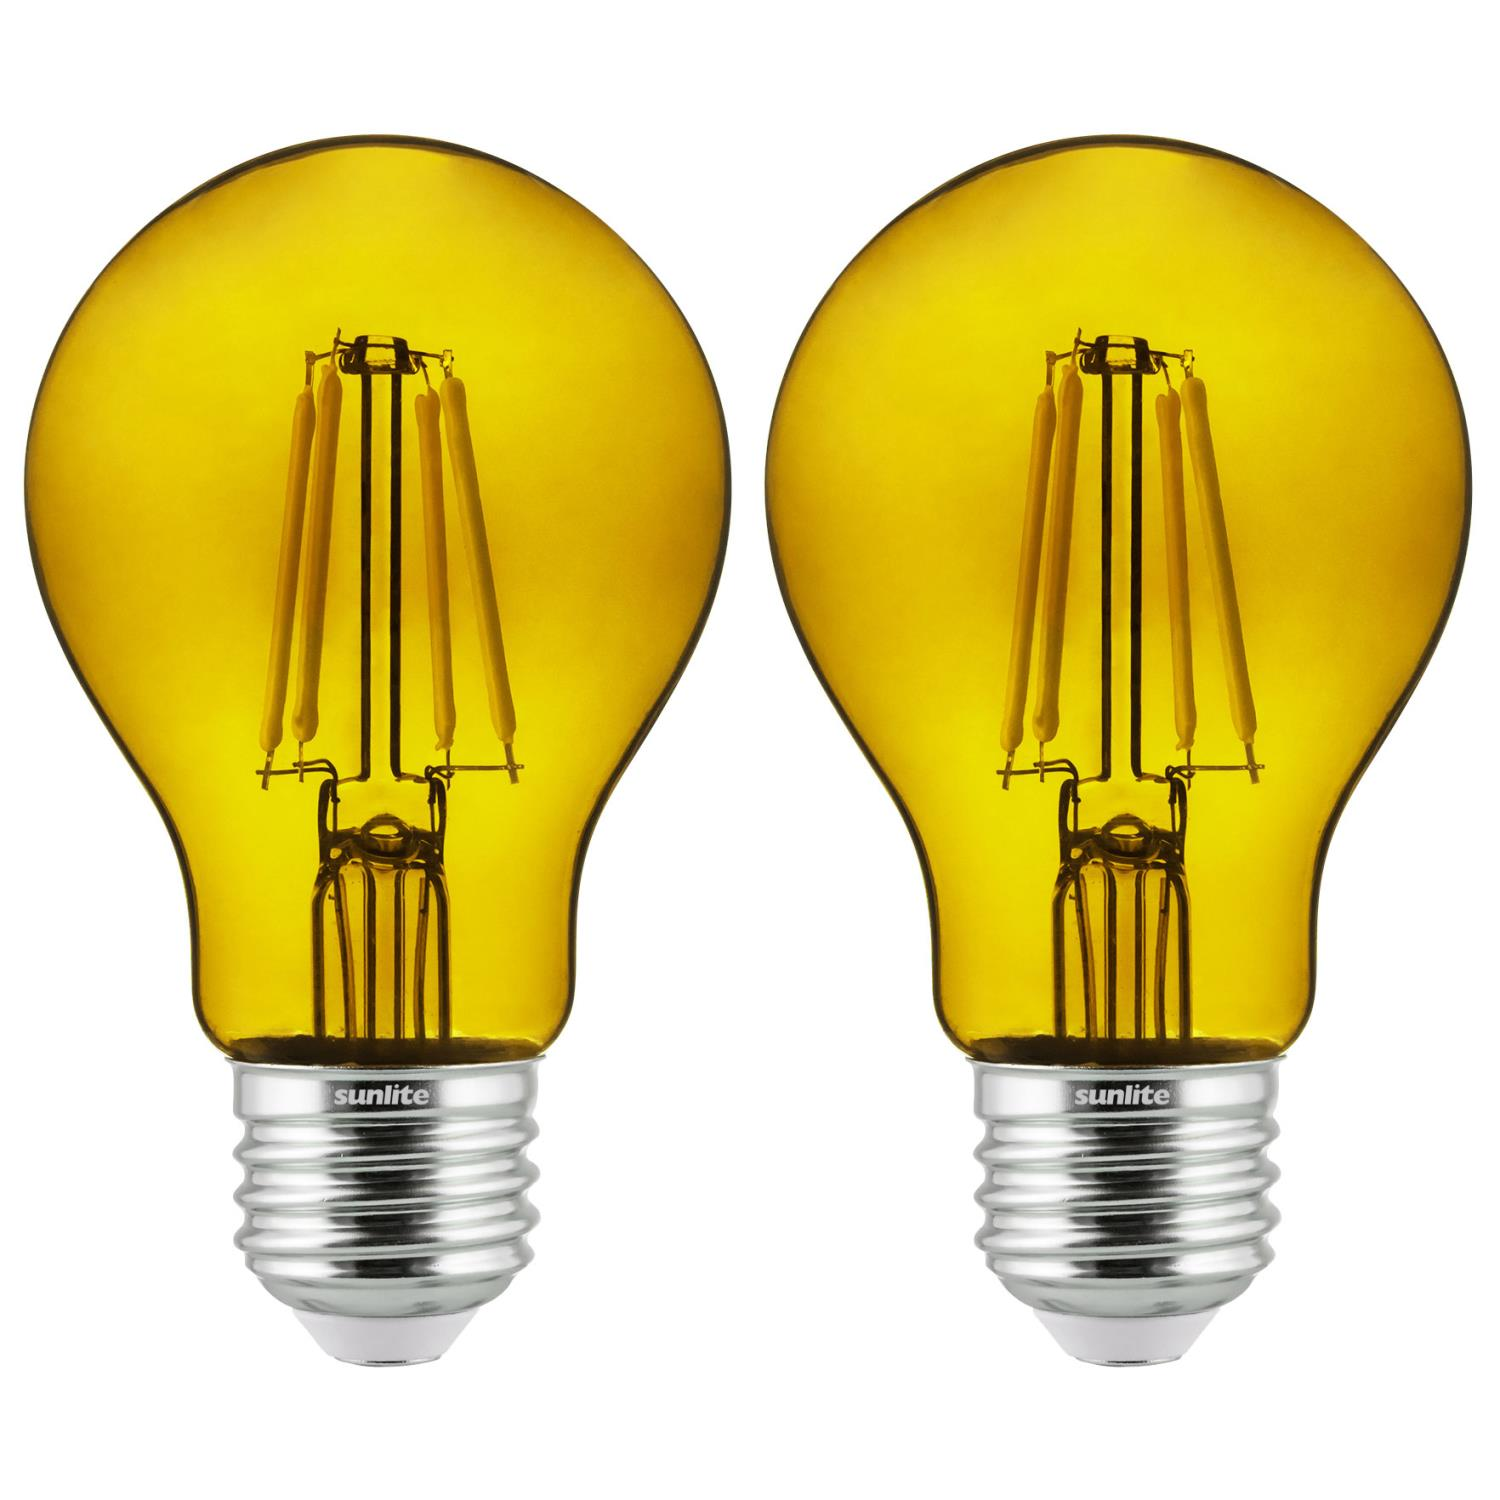 2-Pack Sunlite LED Transparent Yellow A19 Filament Bulbs, 4.5 Watts, Dimmable, UL Listed